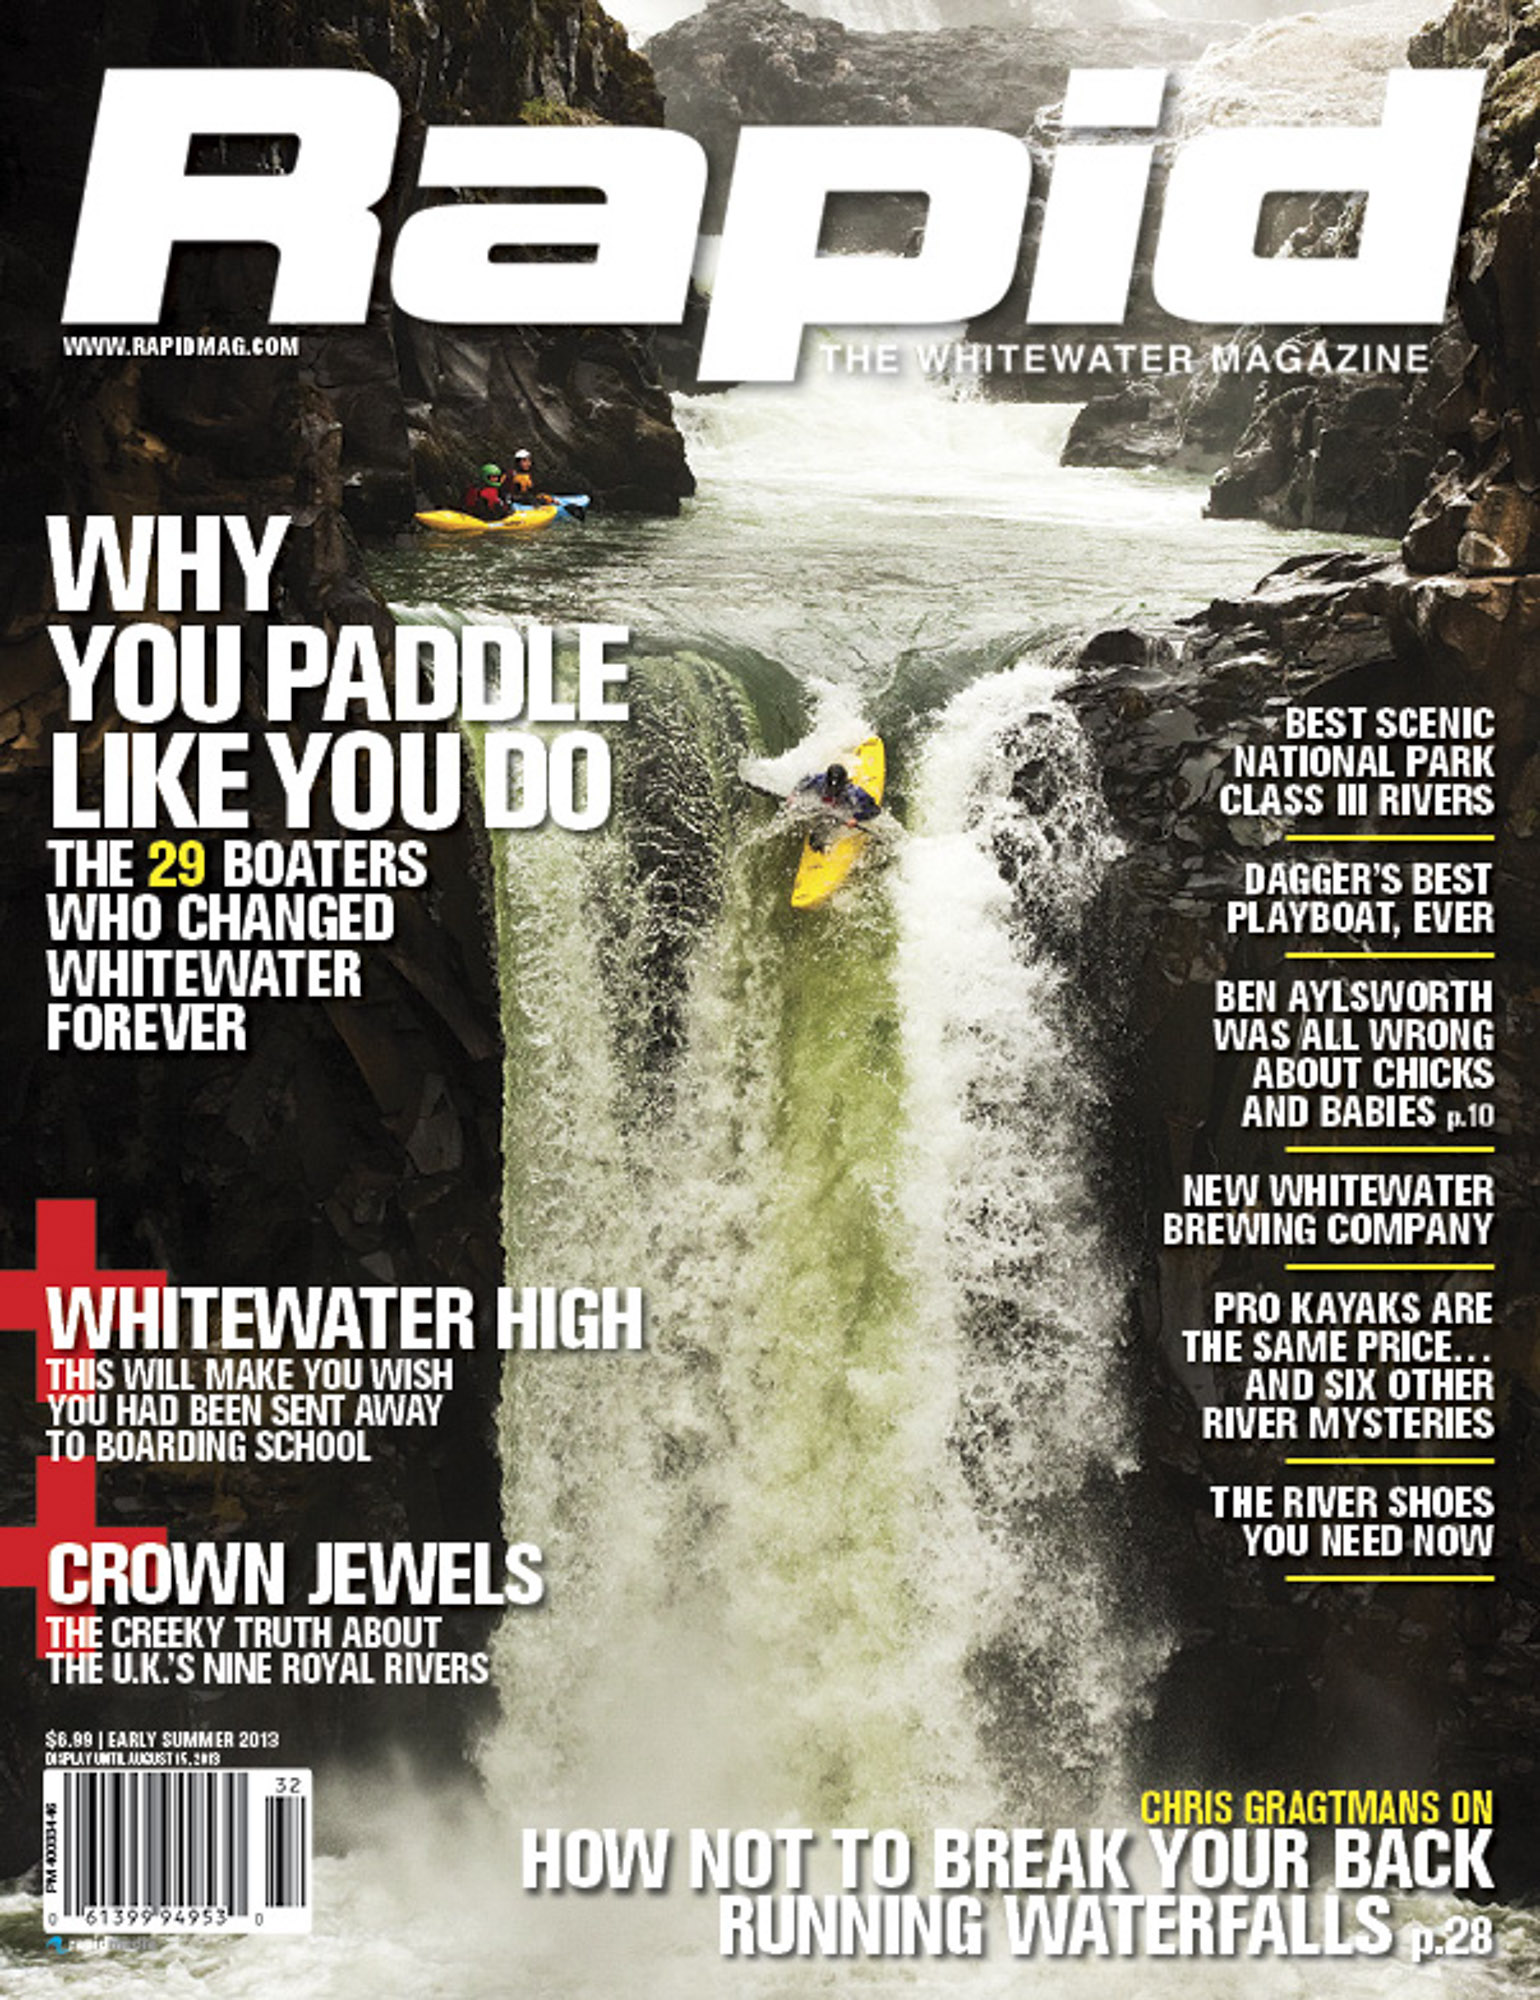 rapid-magazine-witewater-kayaking-outdoors.JPG